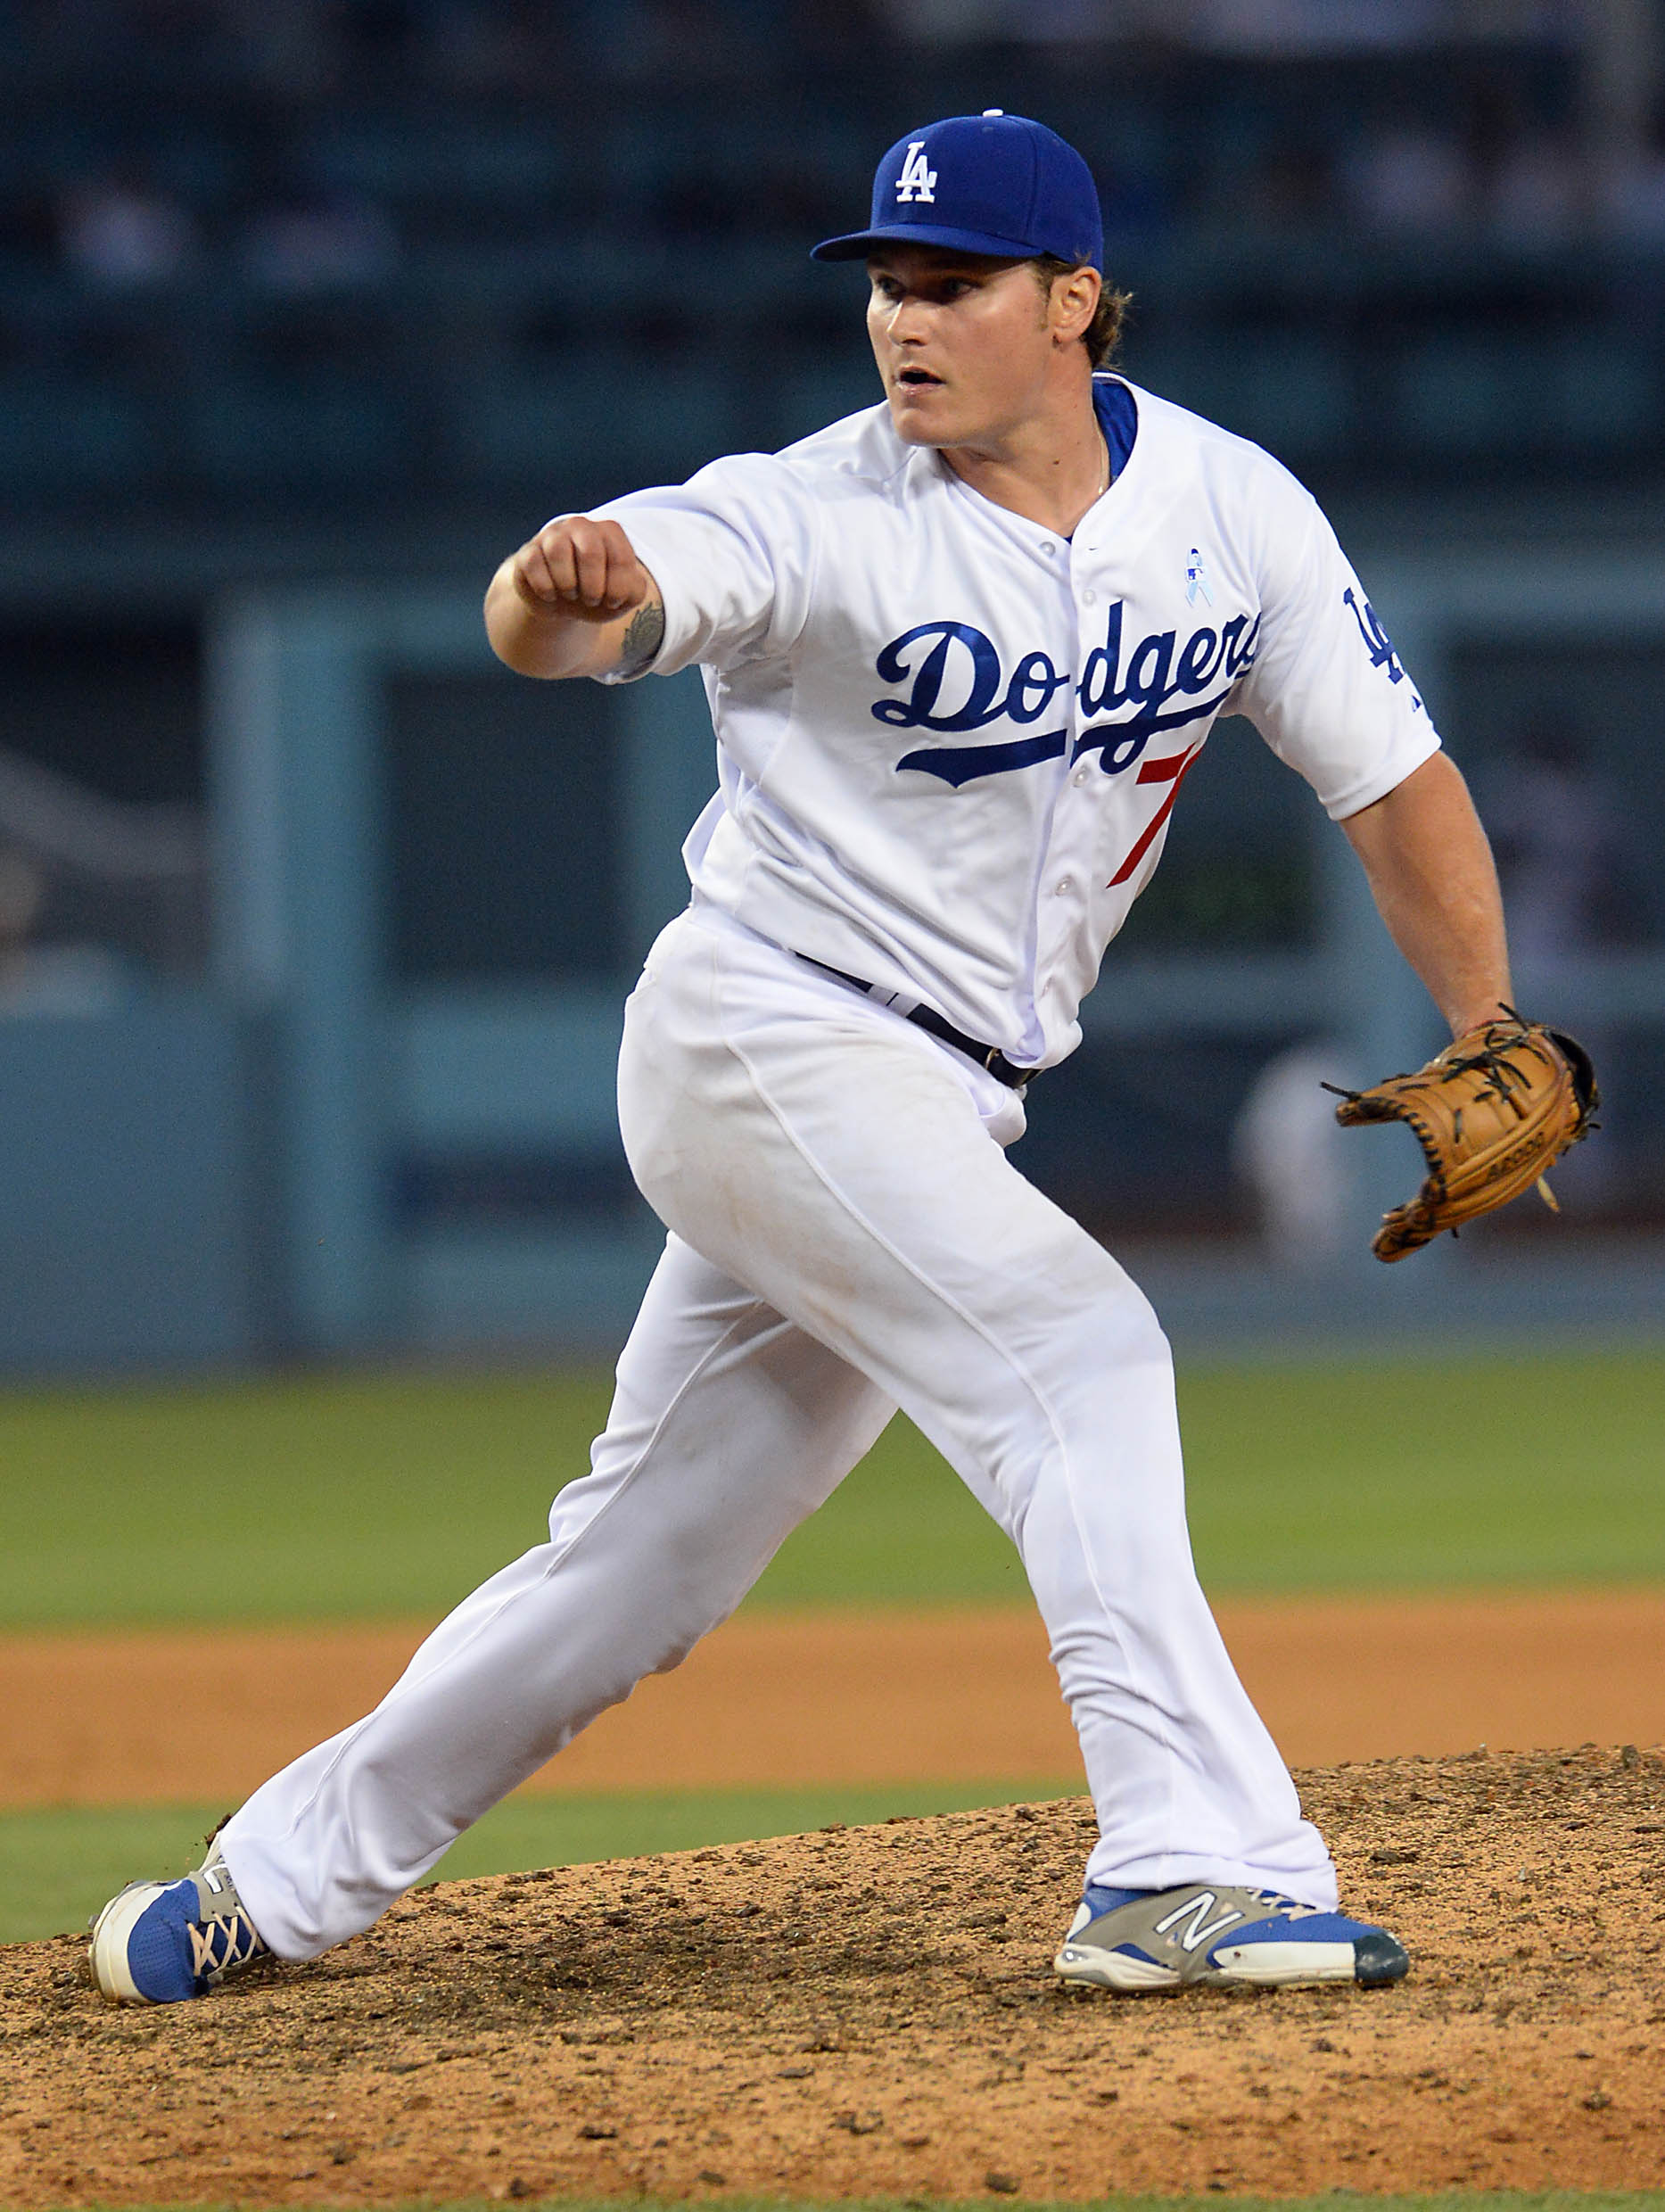 Matt West pitched in two games for the Dodgers in 2015.